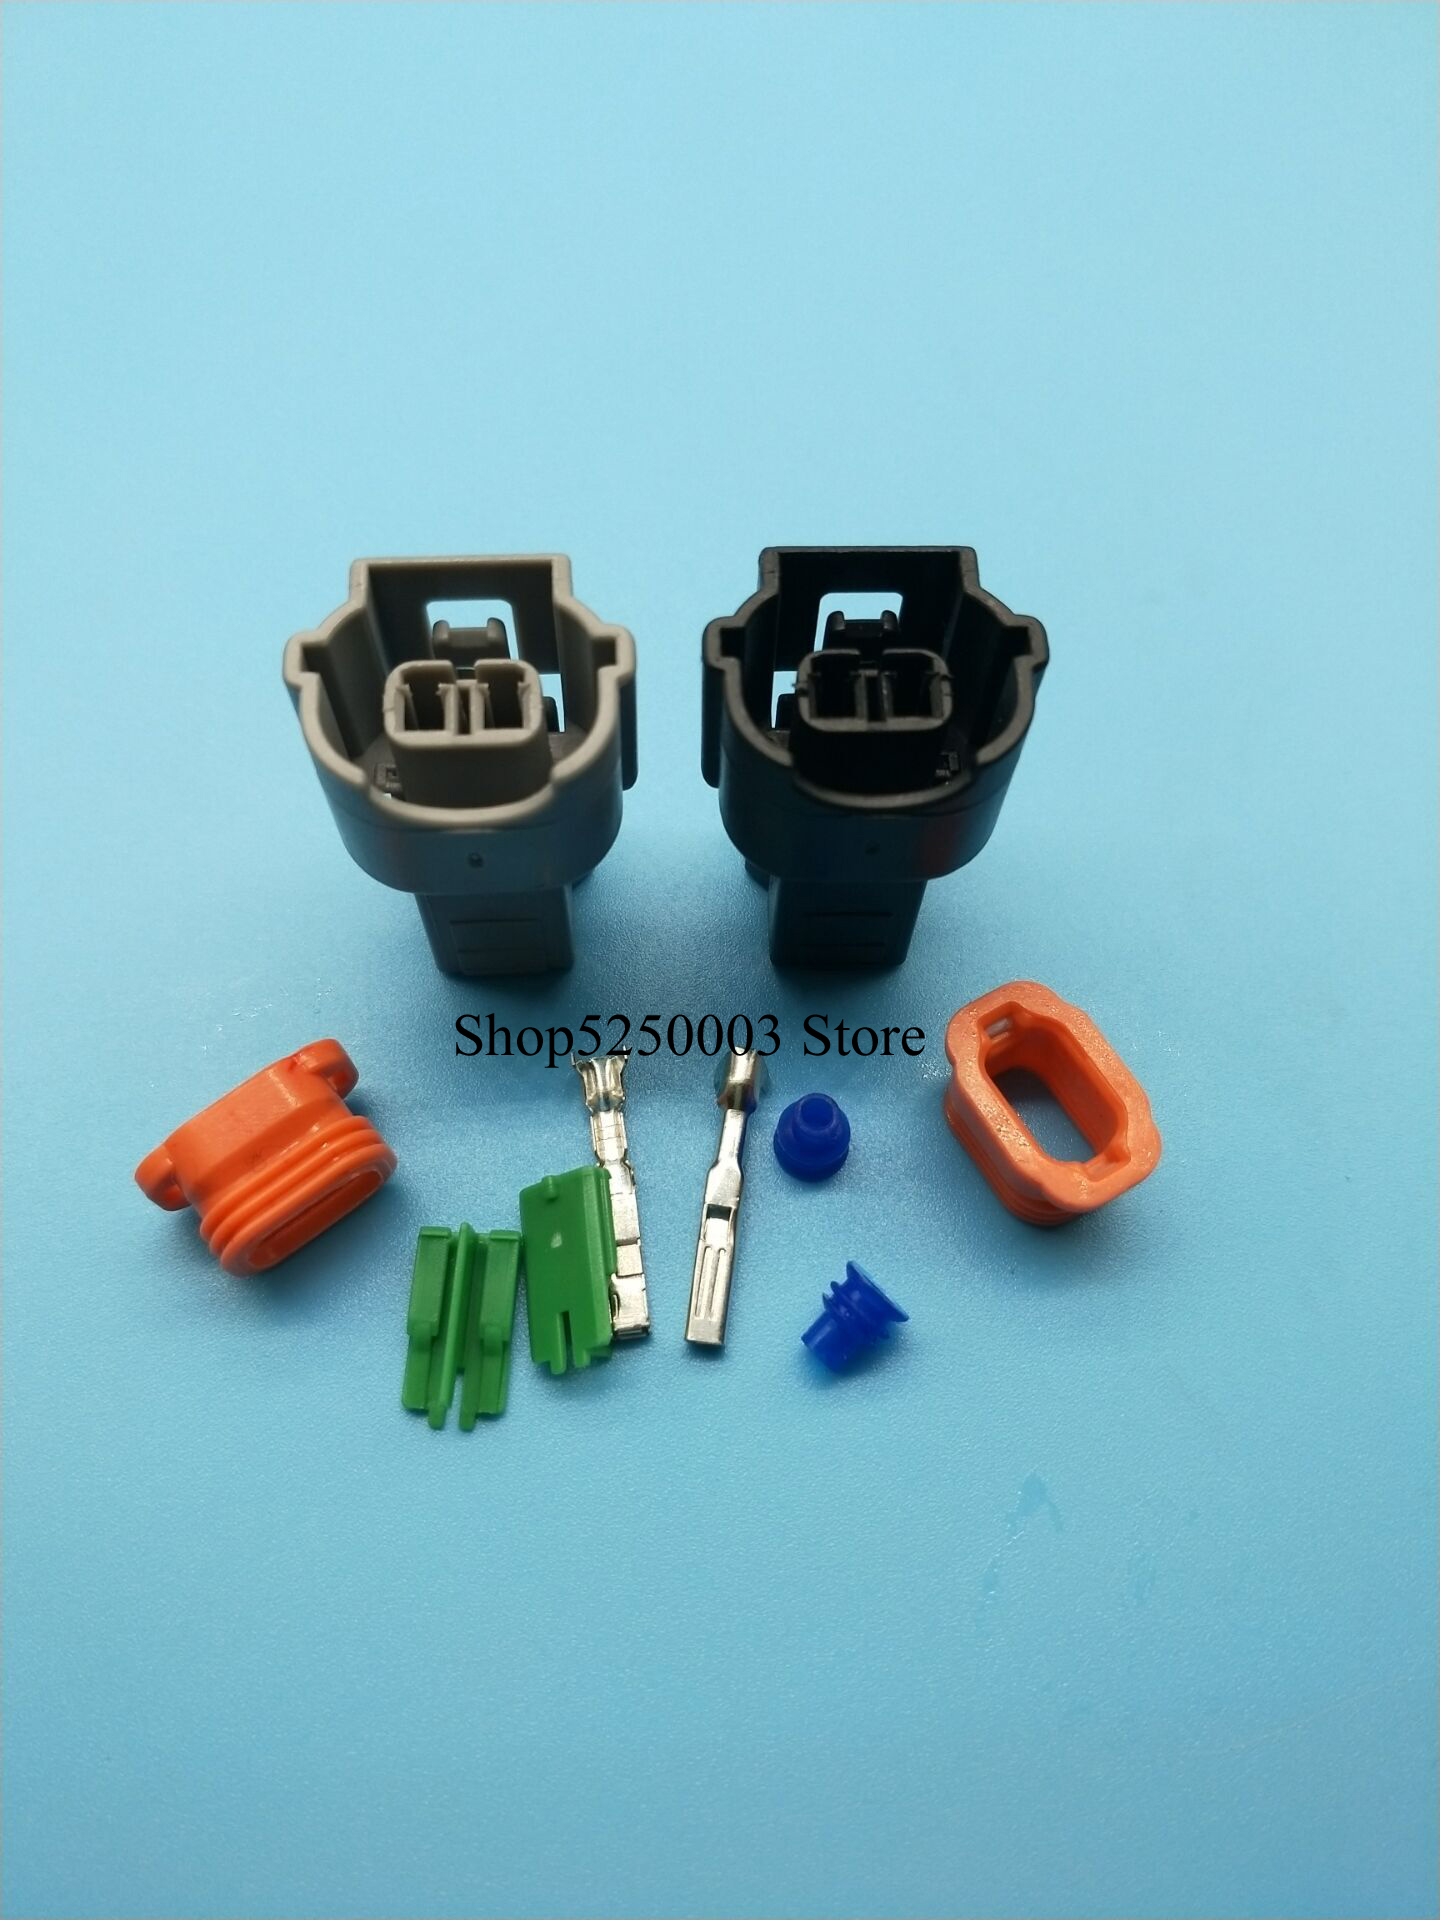 5set <font><b>KUM</b></font> 2 pin waterproof automotive female wire terminal <font><b>connector</b></font> PU465-02127 image